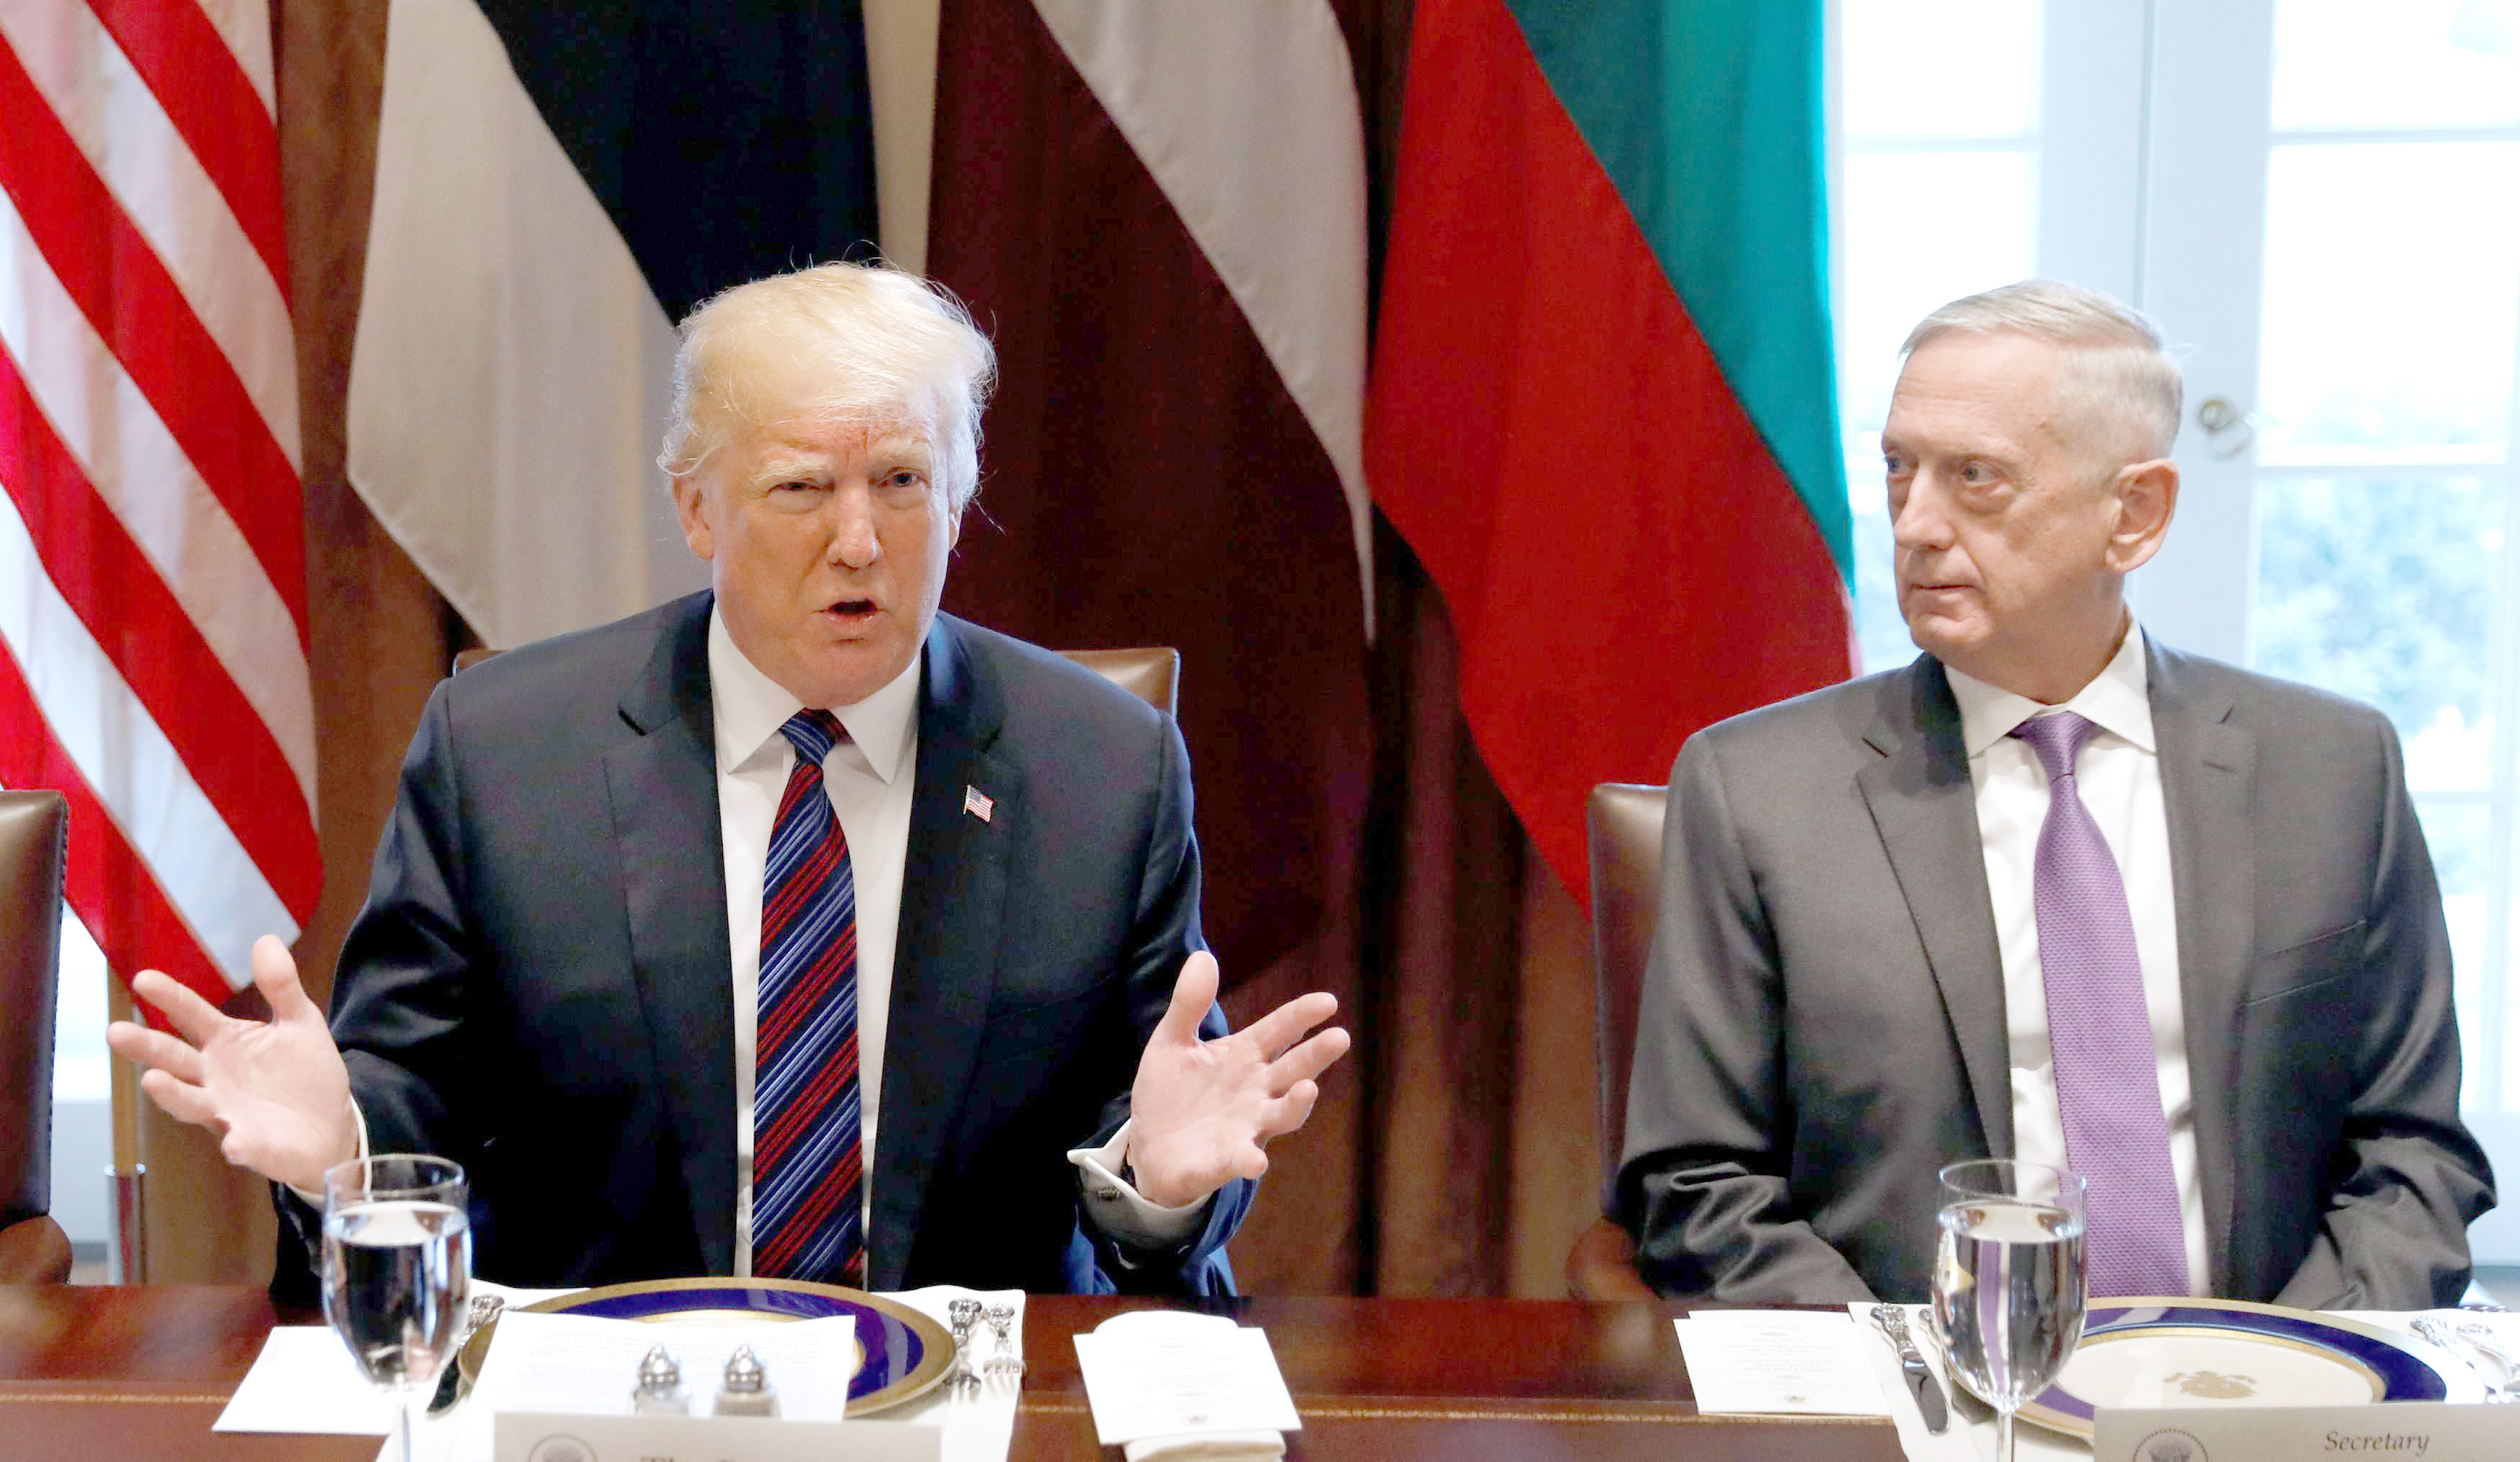 With US Secretary of Defence James Mattis (R) at his side, US President Donald Trump speaks at the White House, on April 3. (Reuters)